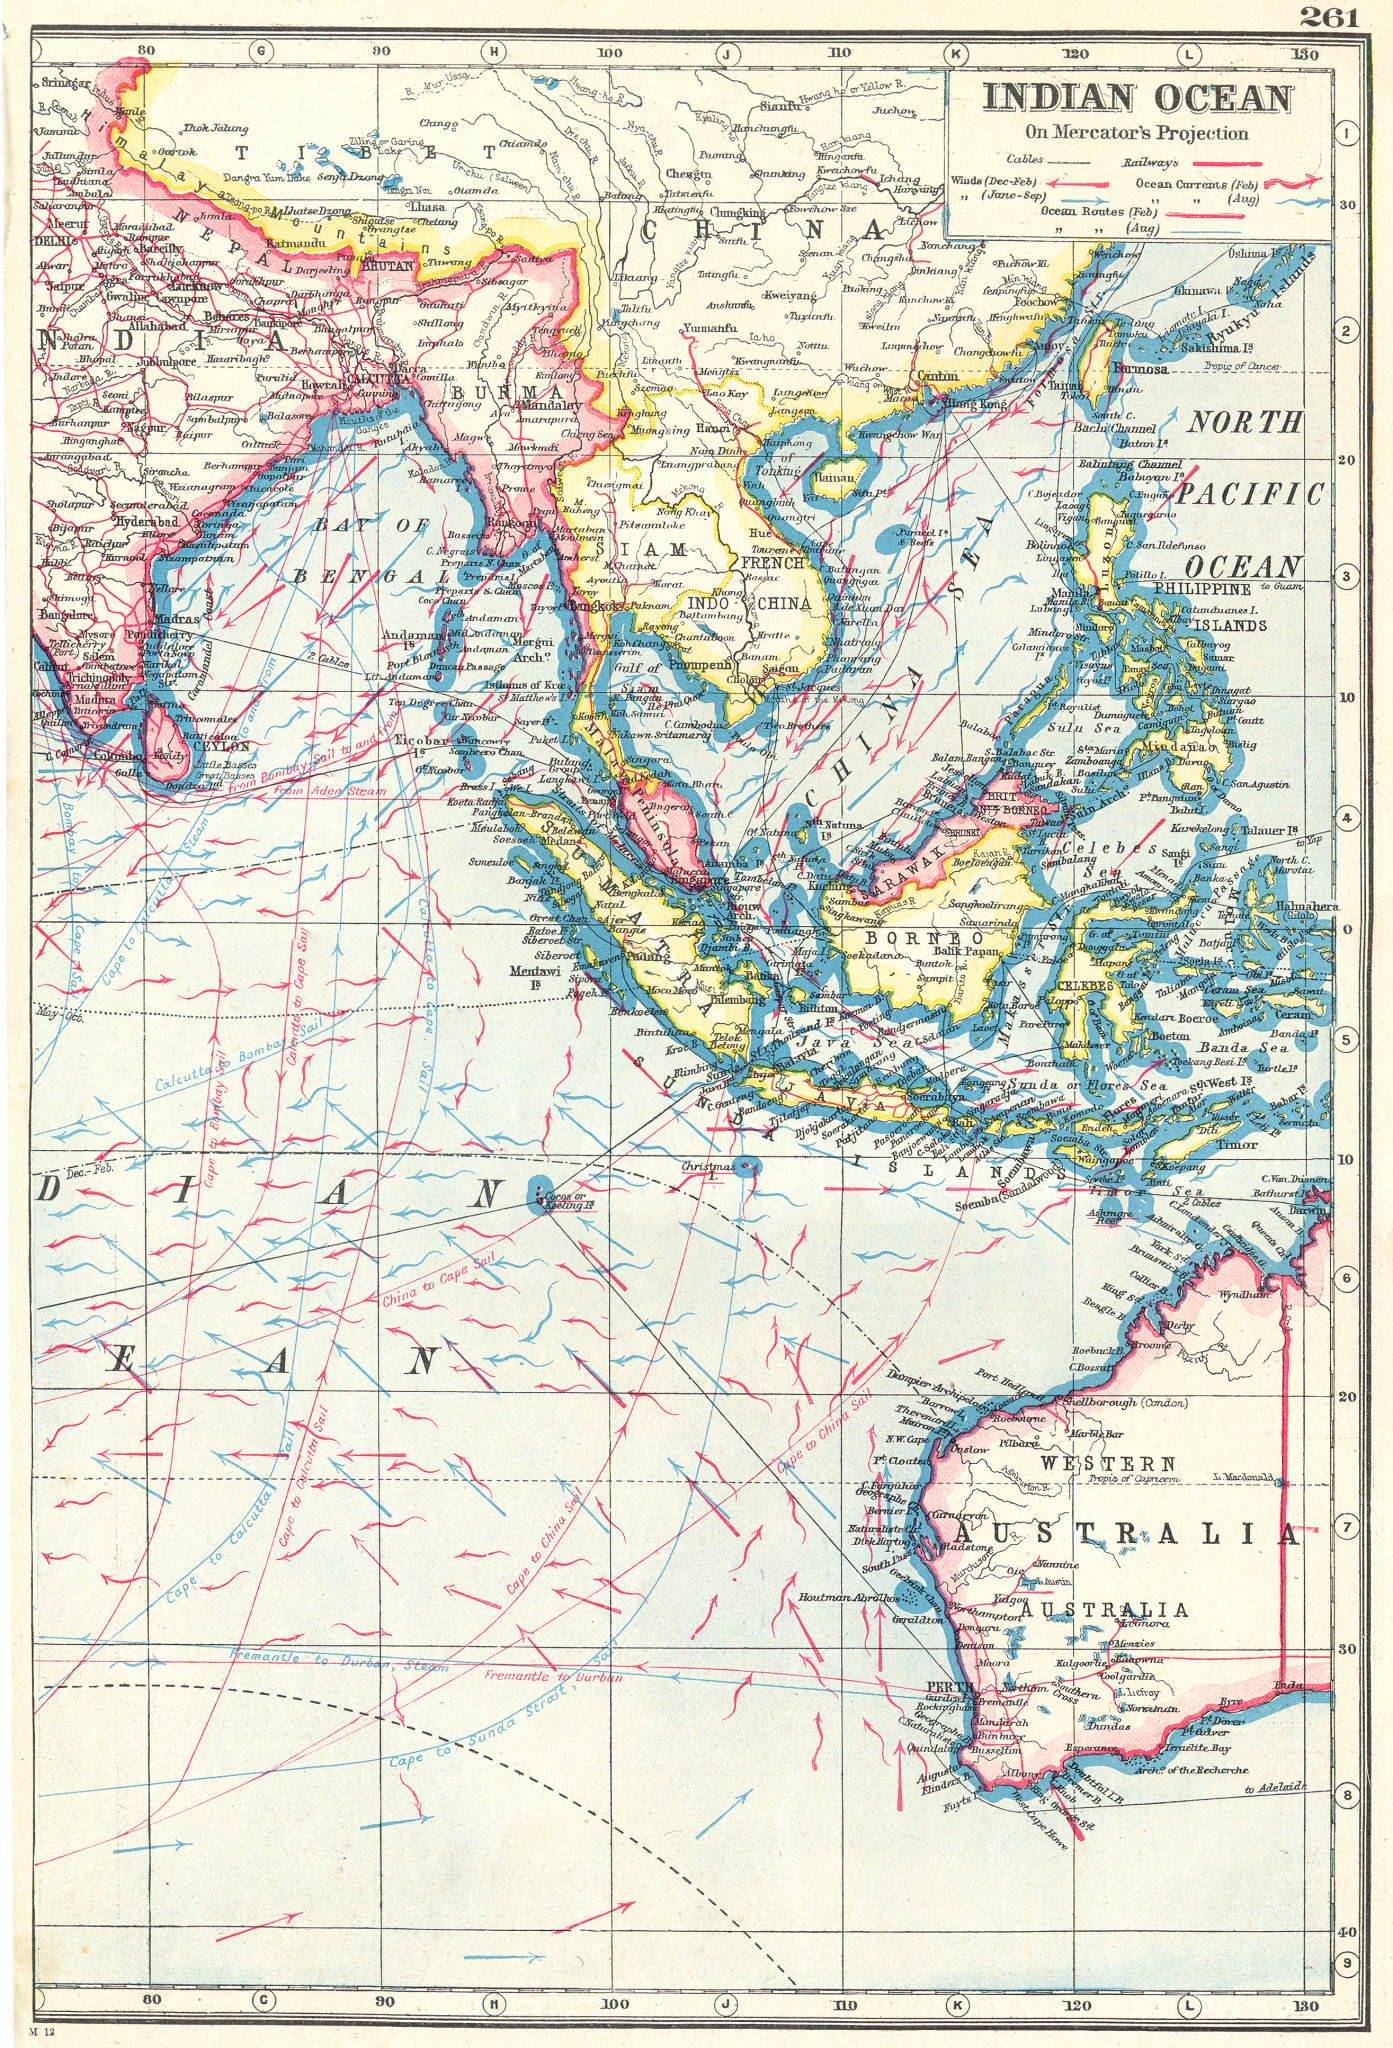 Associate Product INDIAN OCEAN EAST. East Indies. Shows winds & ocean currents 1920 old map